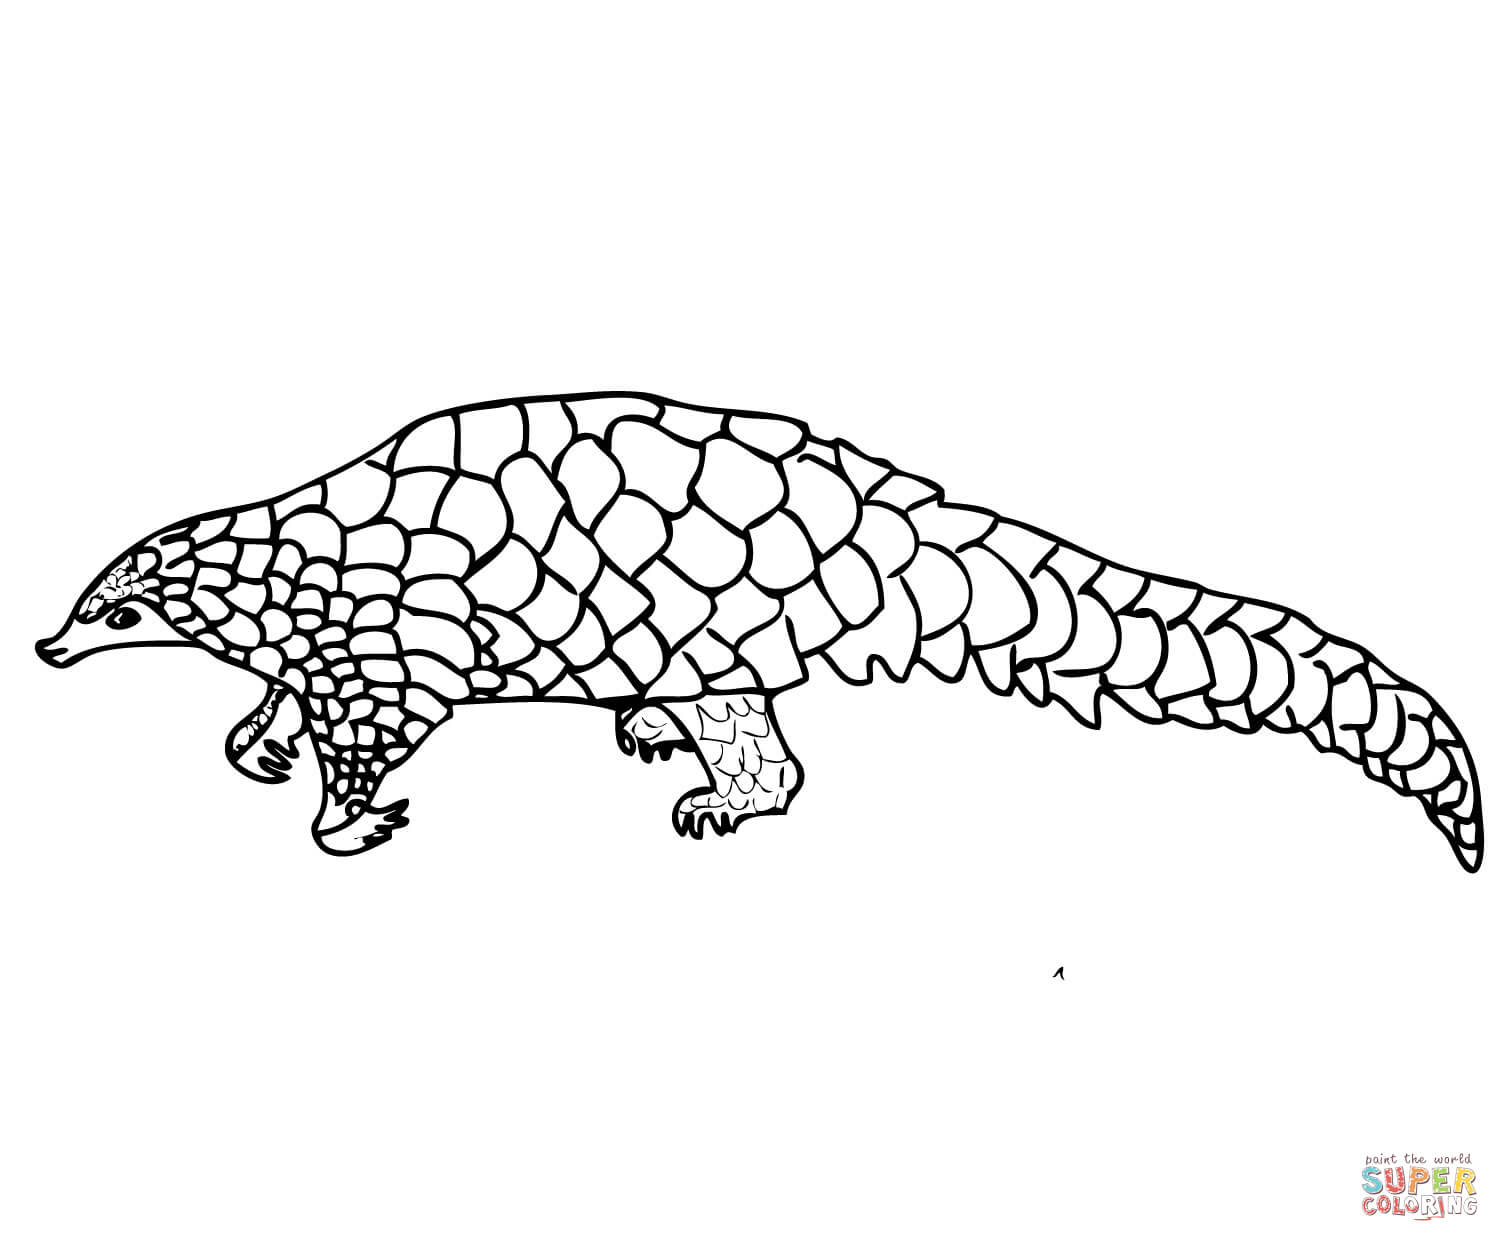 Pangolin coloring #9, Download drawings